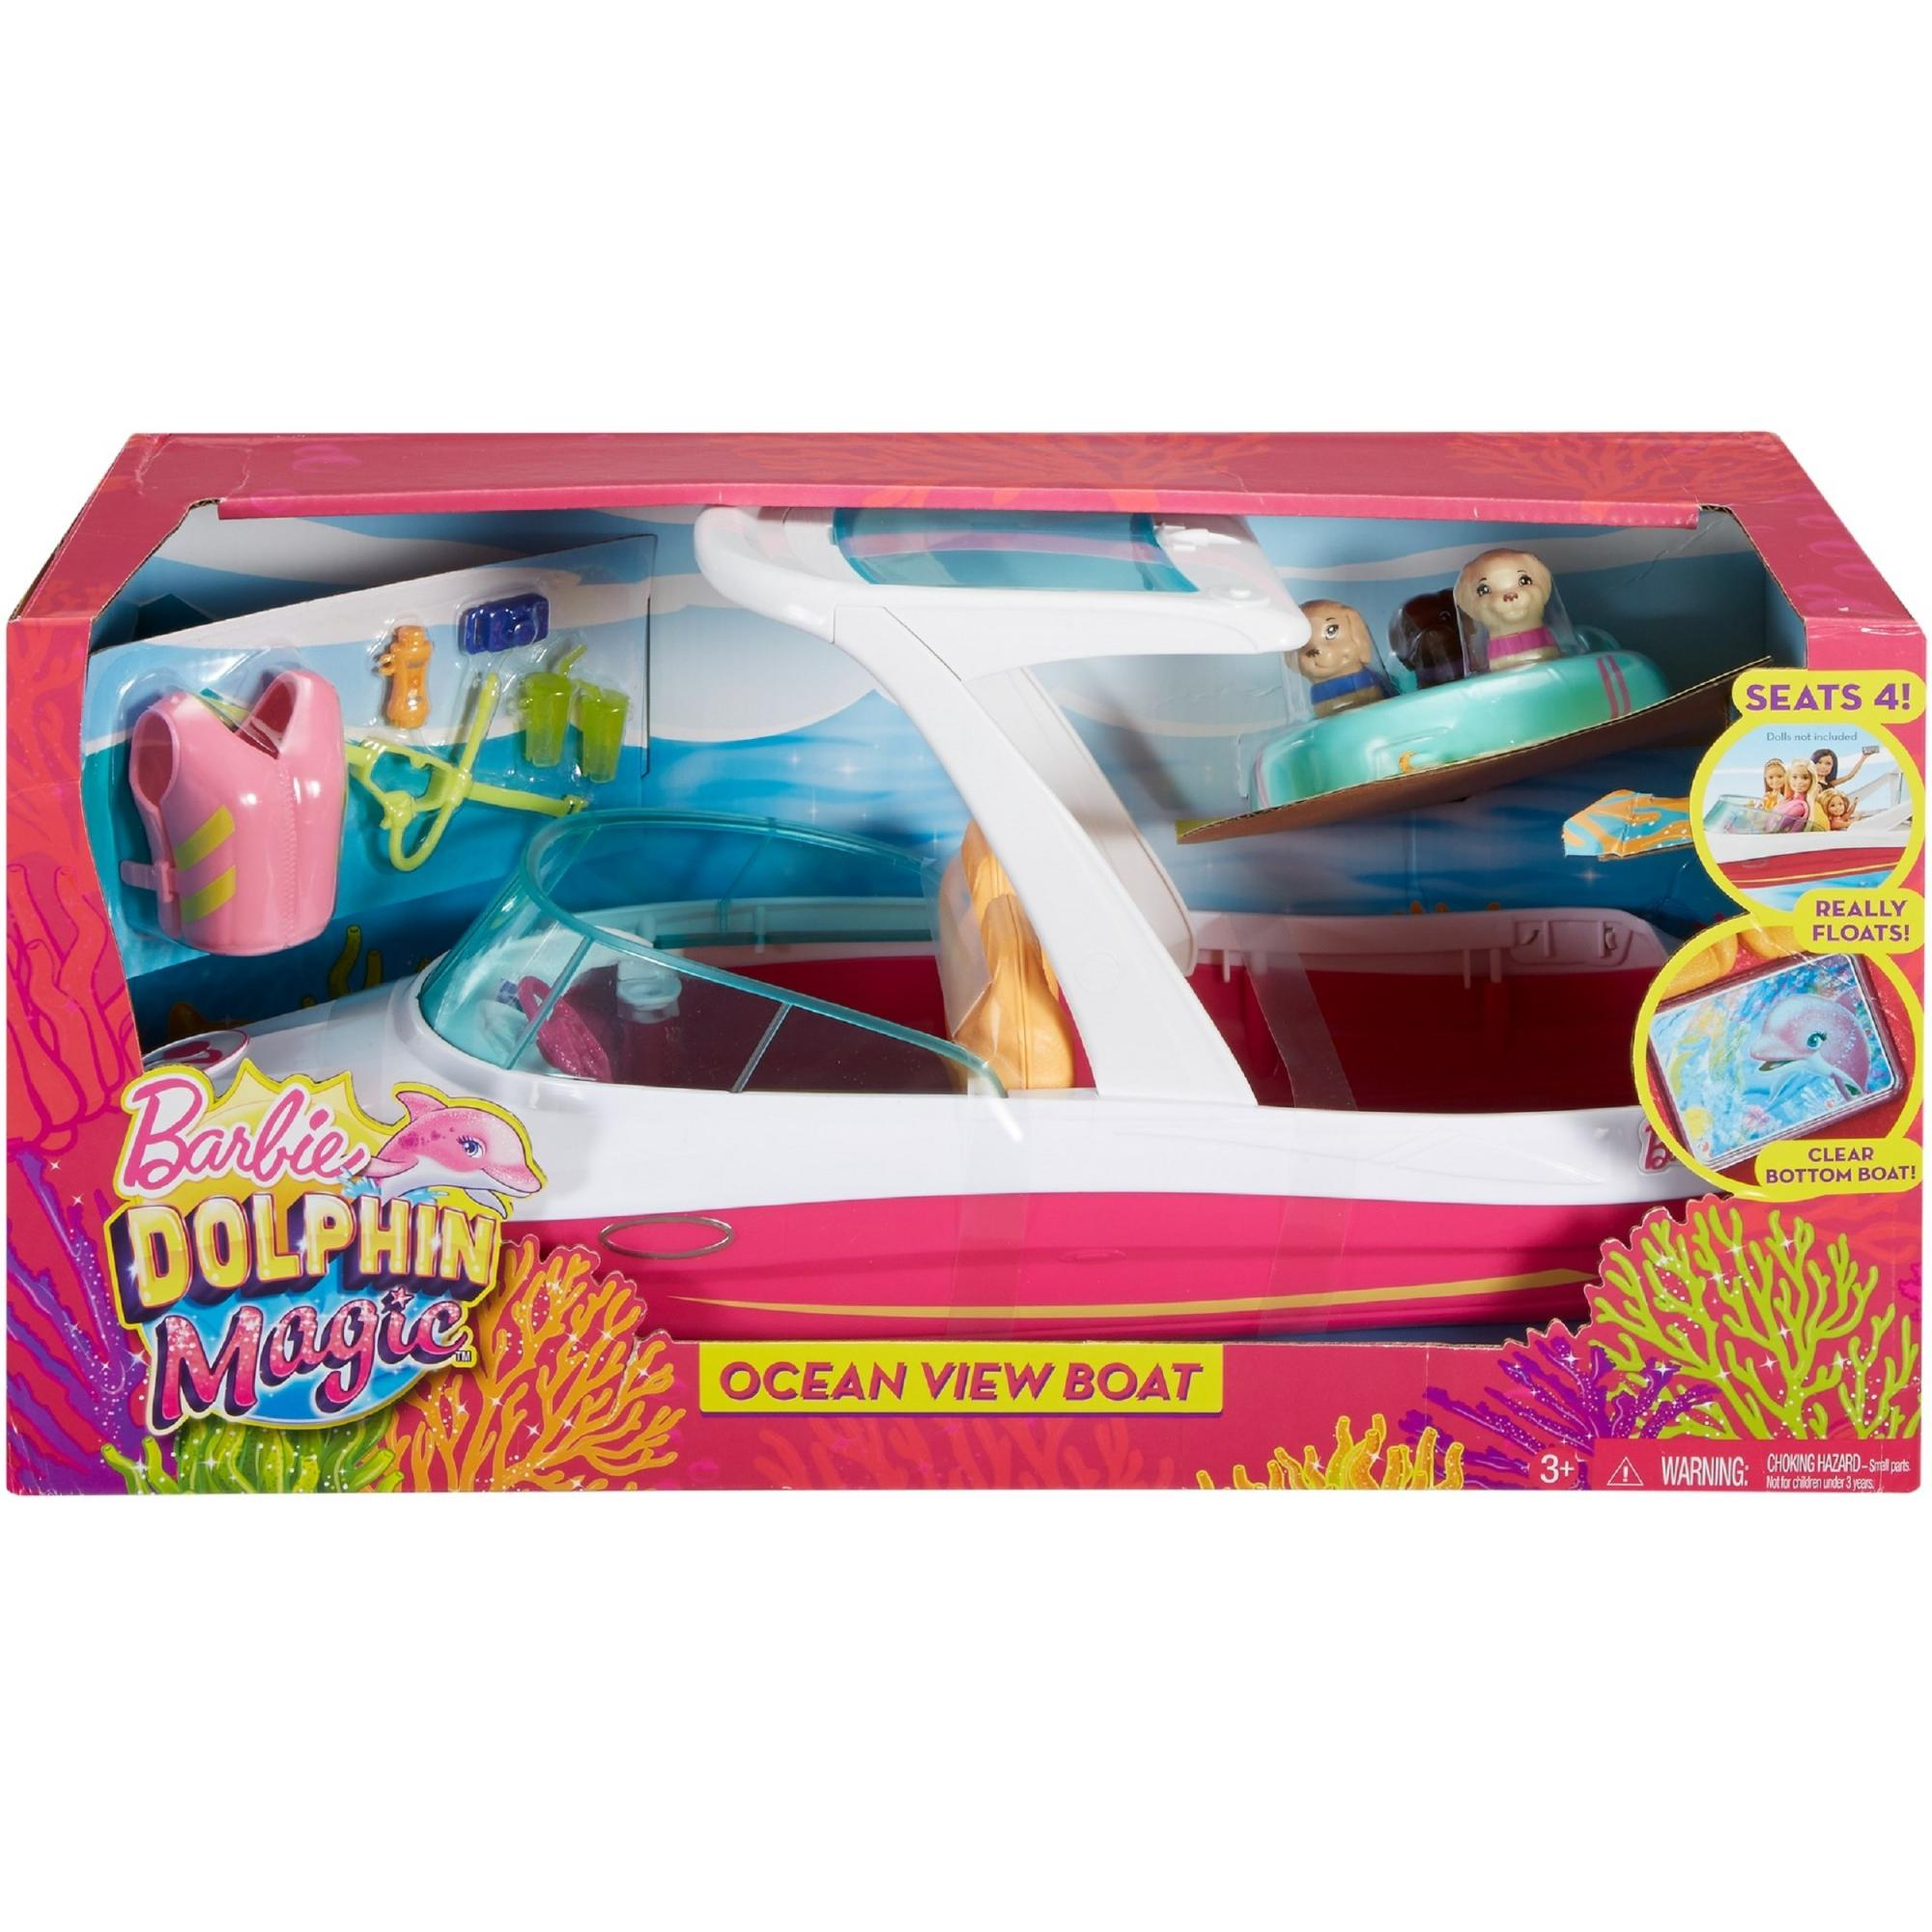 Barbie Dolphin Magic Ocean View Boat With 3 Puppies Accessories